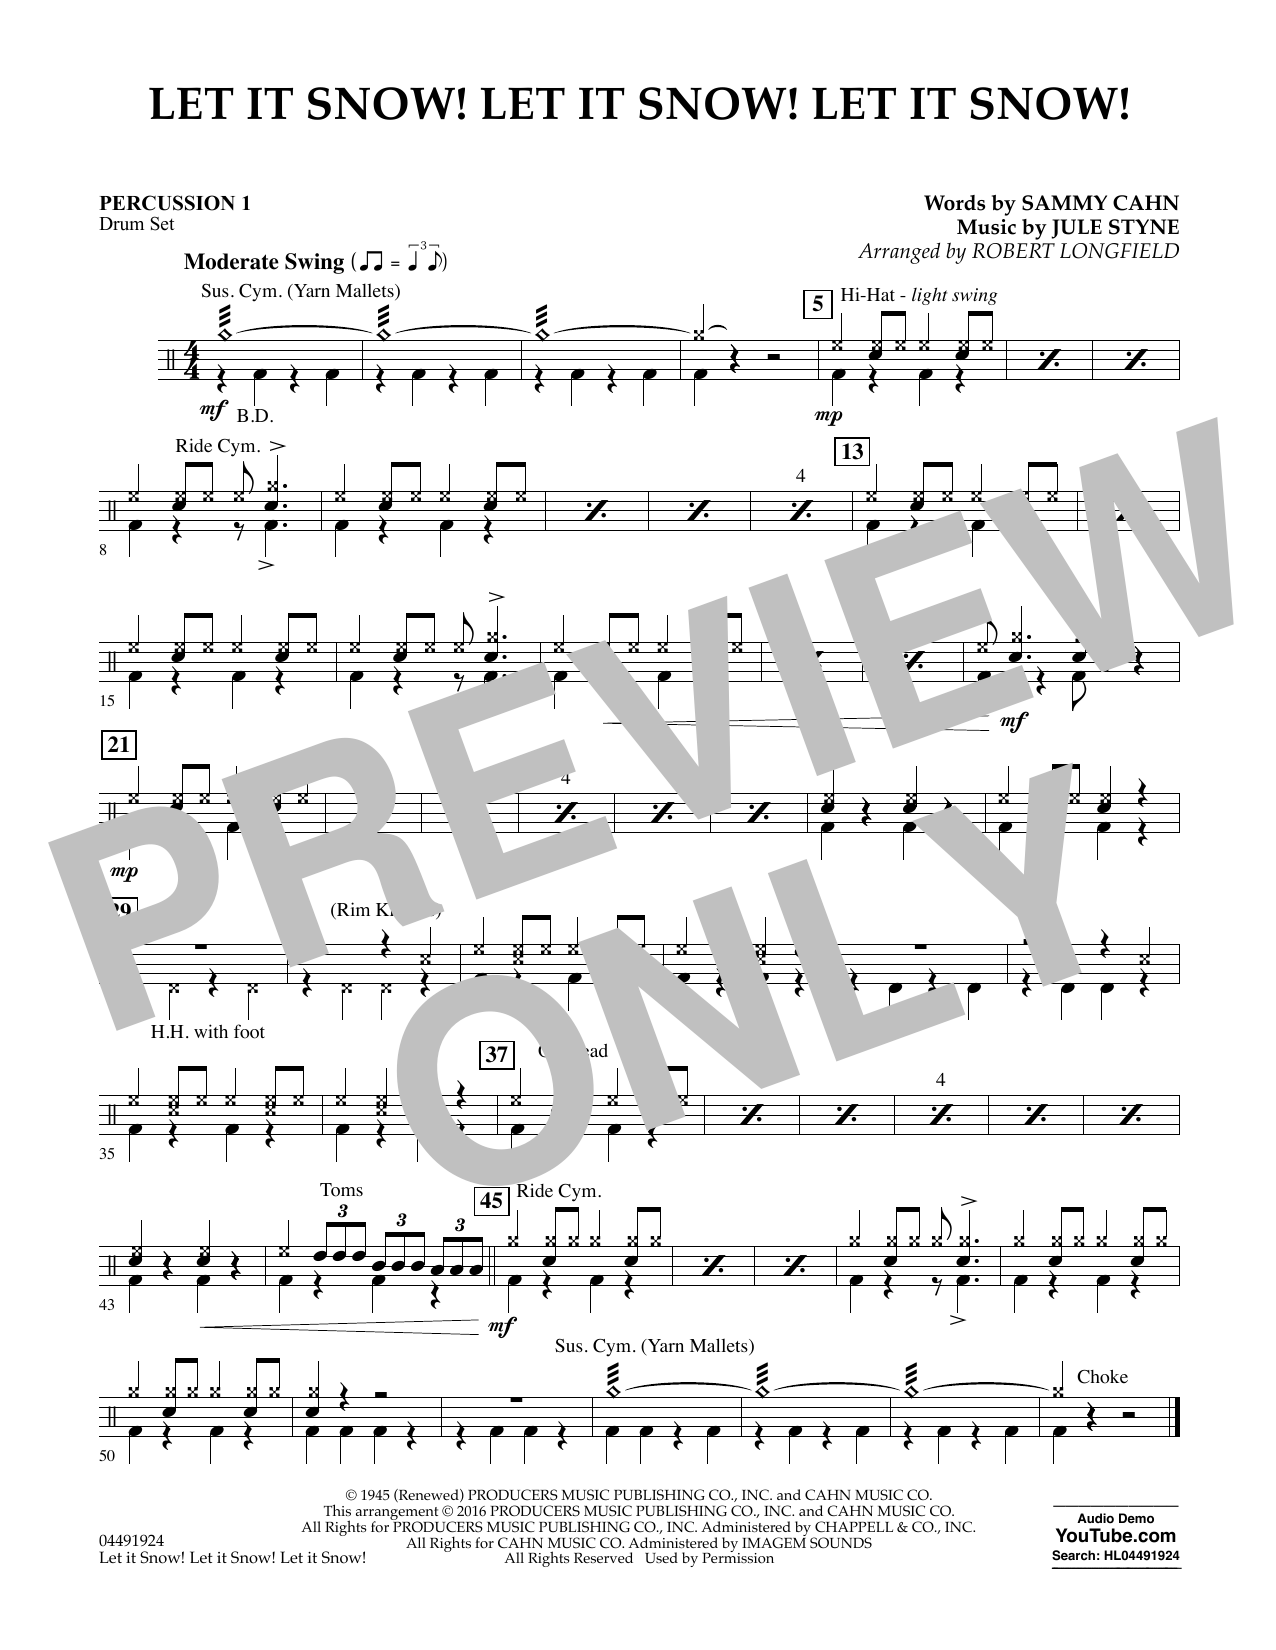 Joe Nichols - Let It Snow! Let It Snow! Let It Snow! - Percussion 1